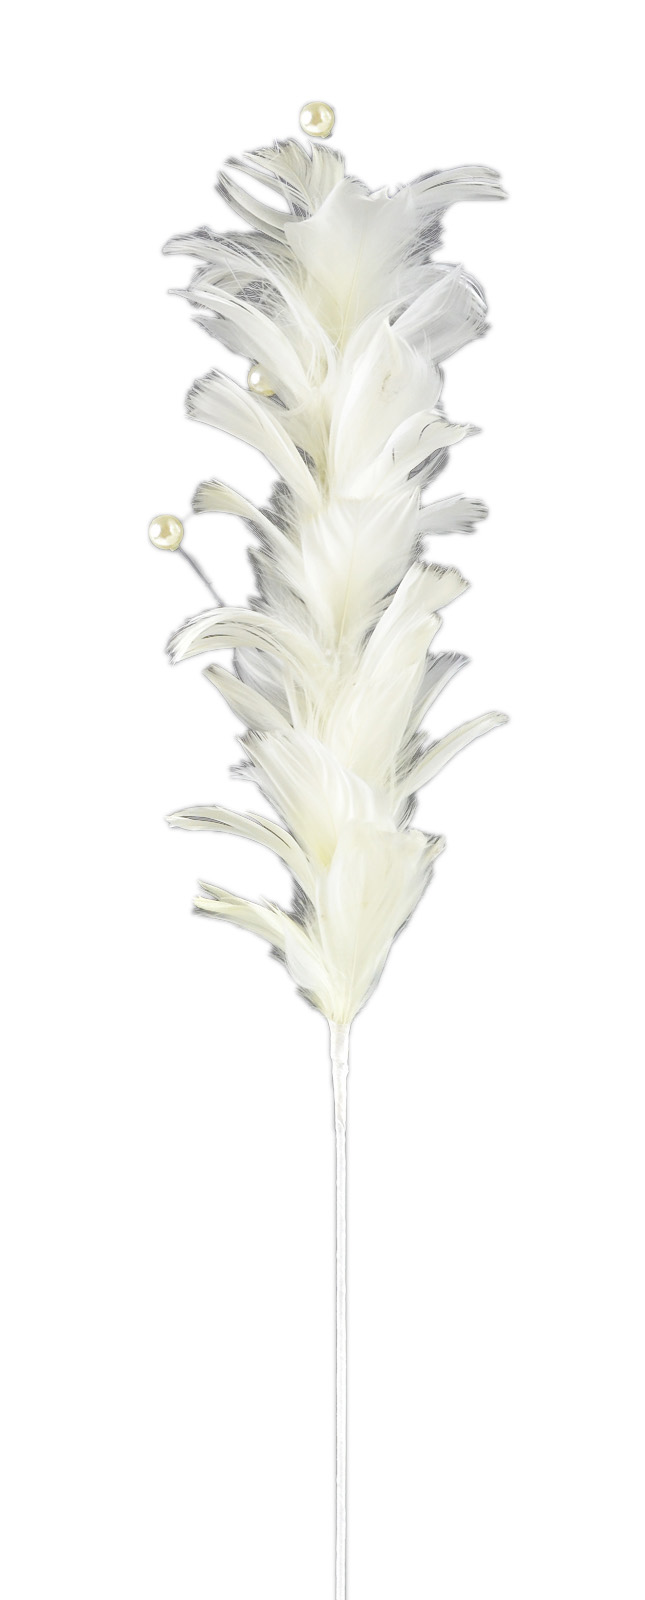 "Bloom Room 24"" Single Deco Feather Stem-Wool"